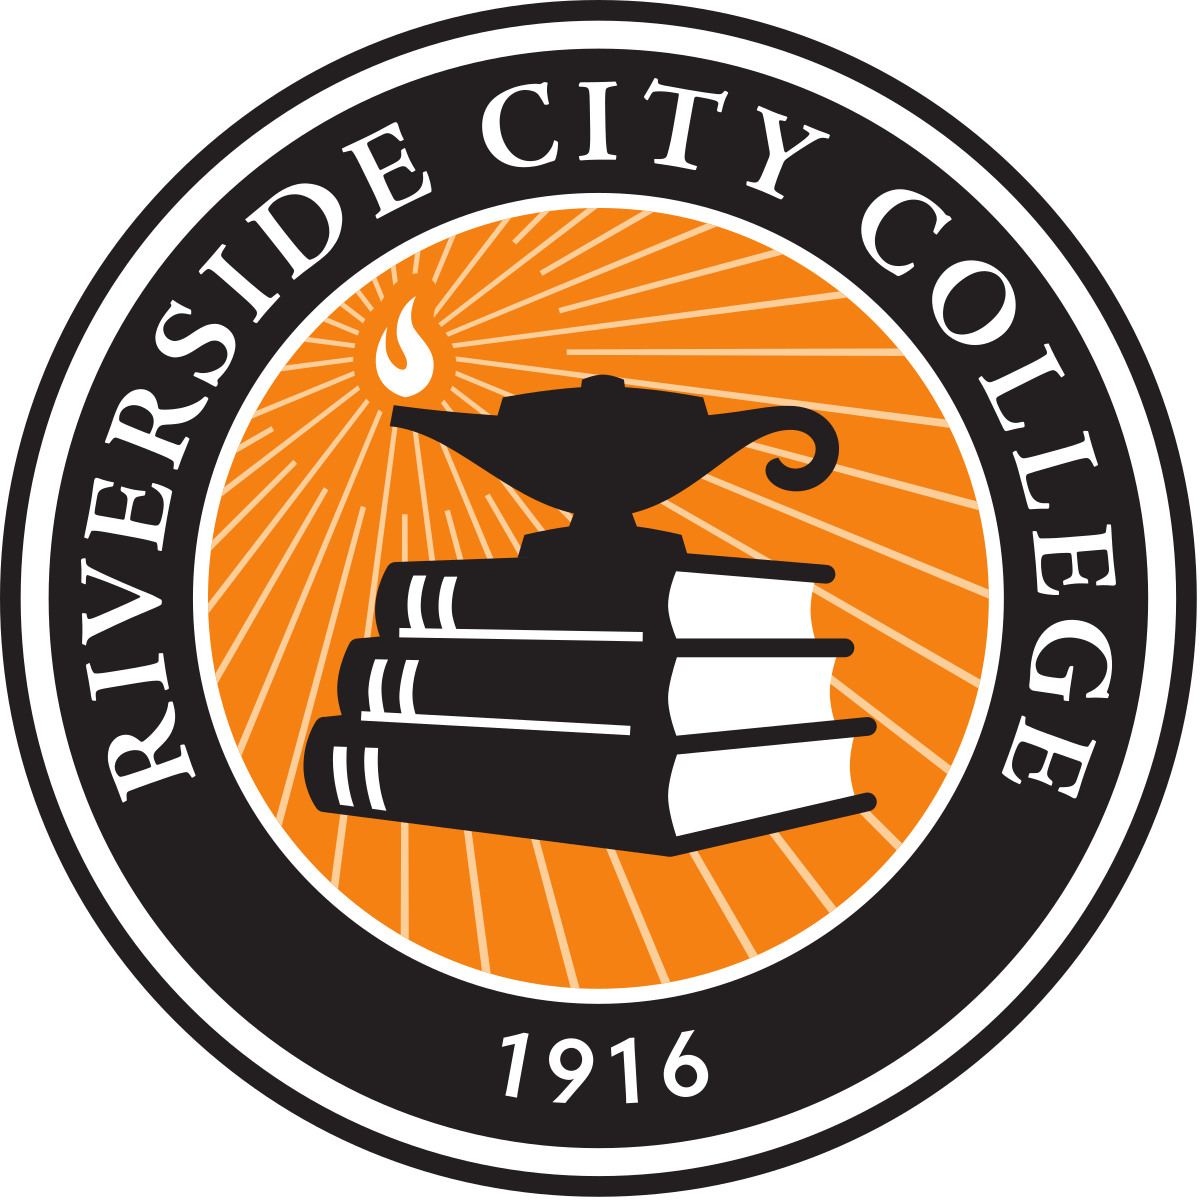 American river college logo png. Riverside city wikipedia